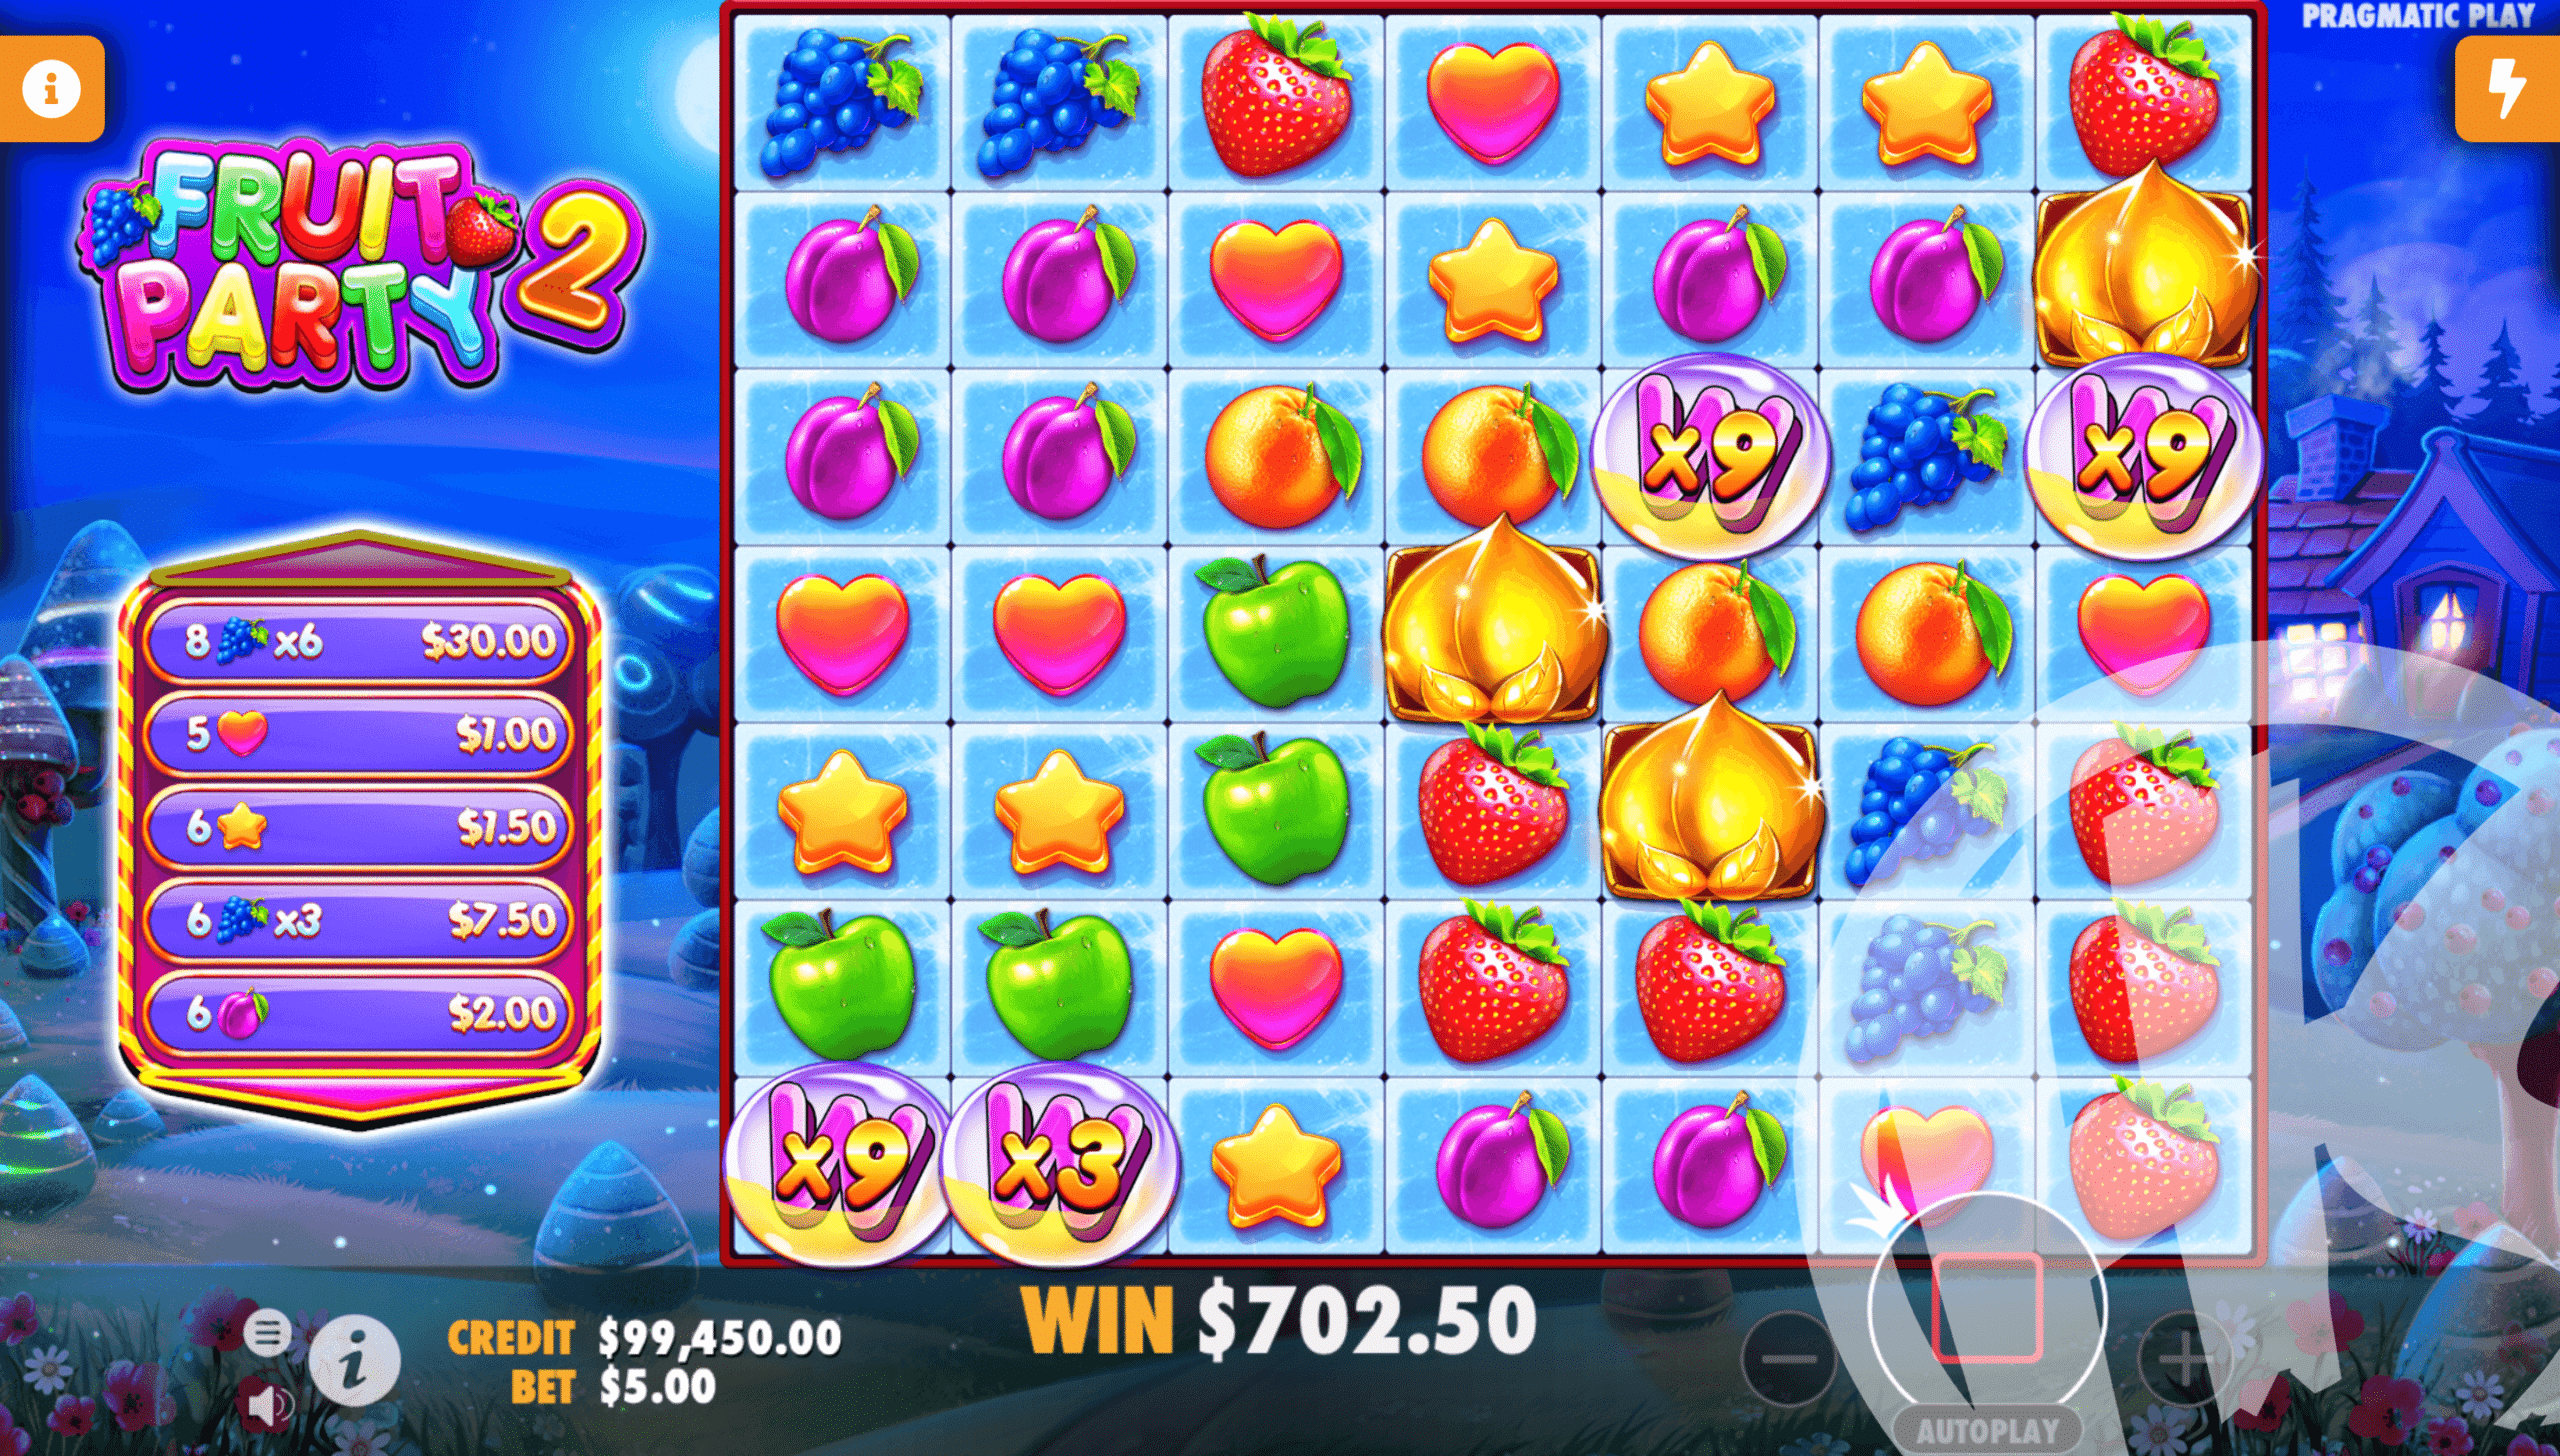 3 Scatters Retriggers Free Spins